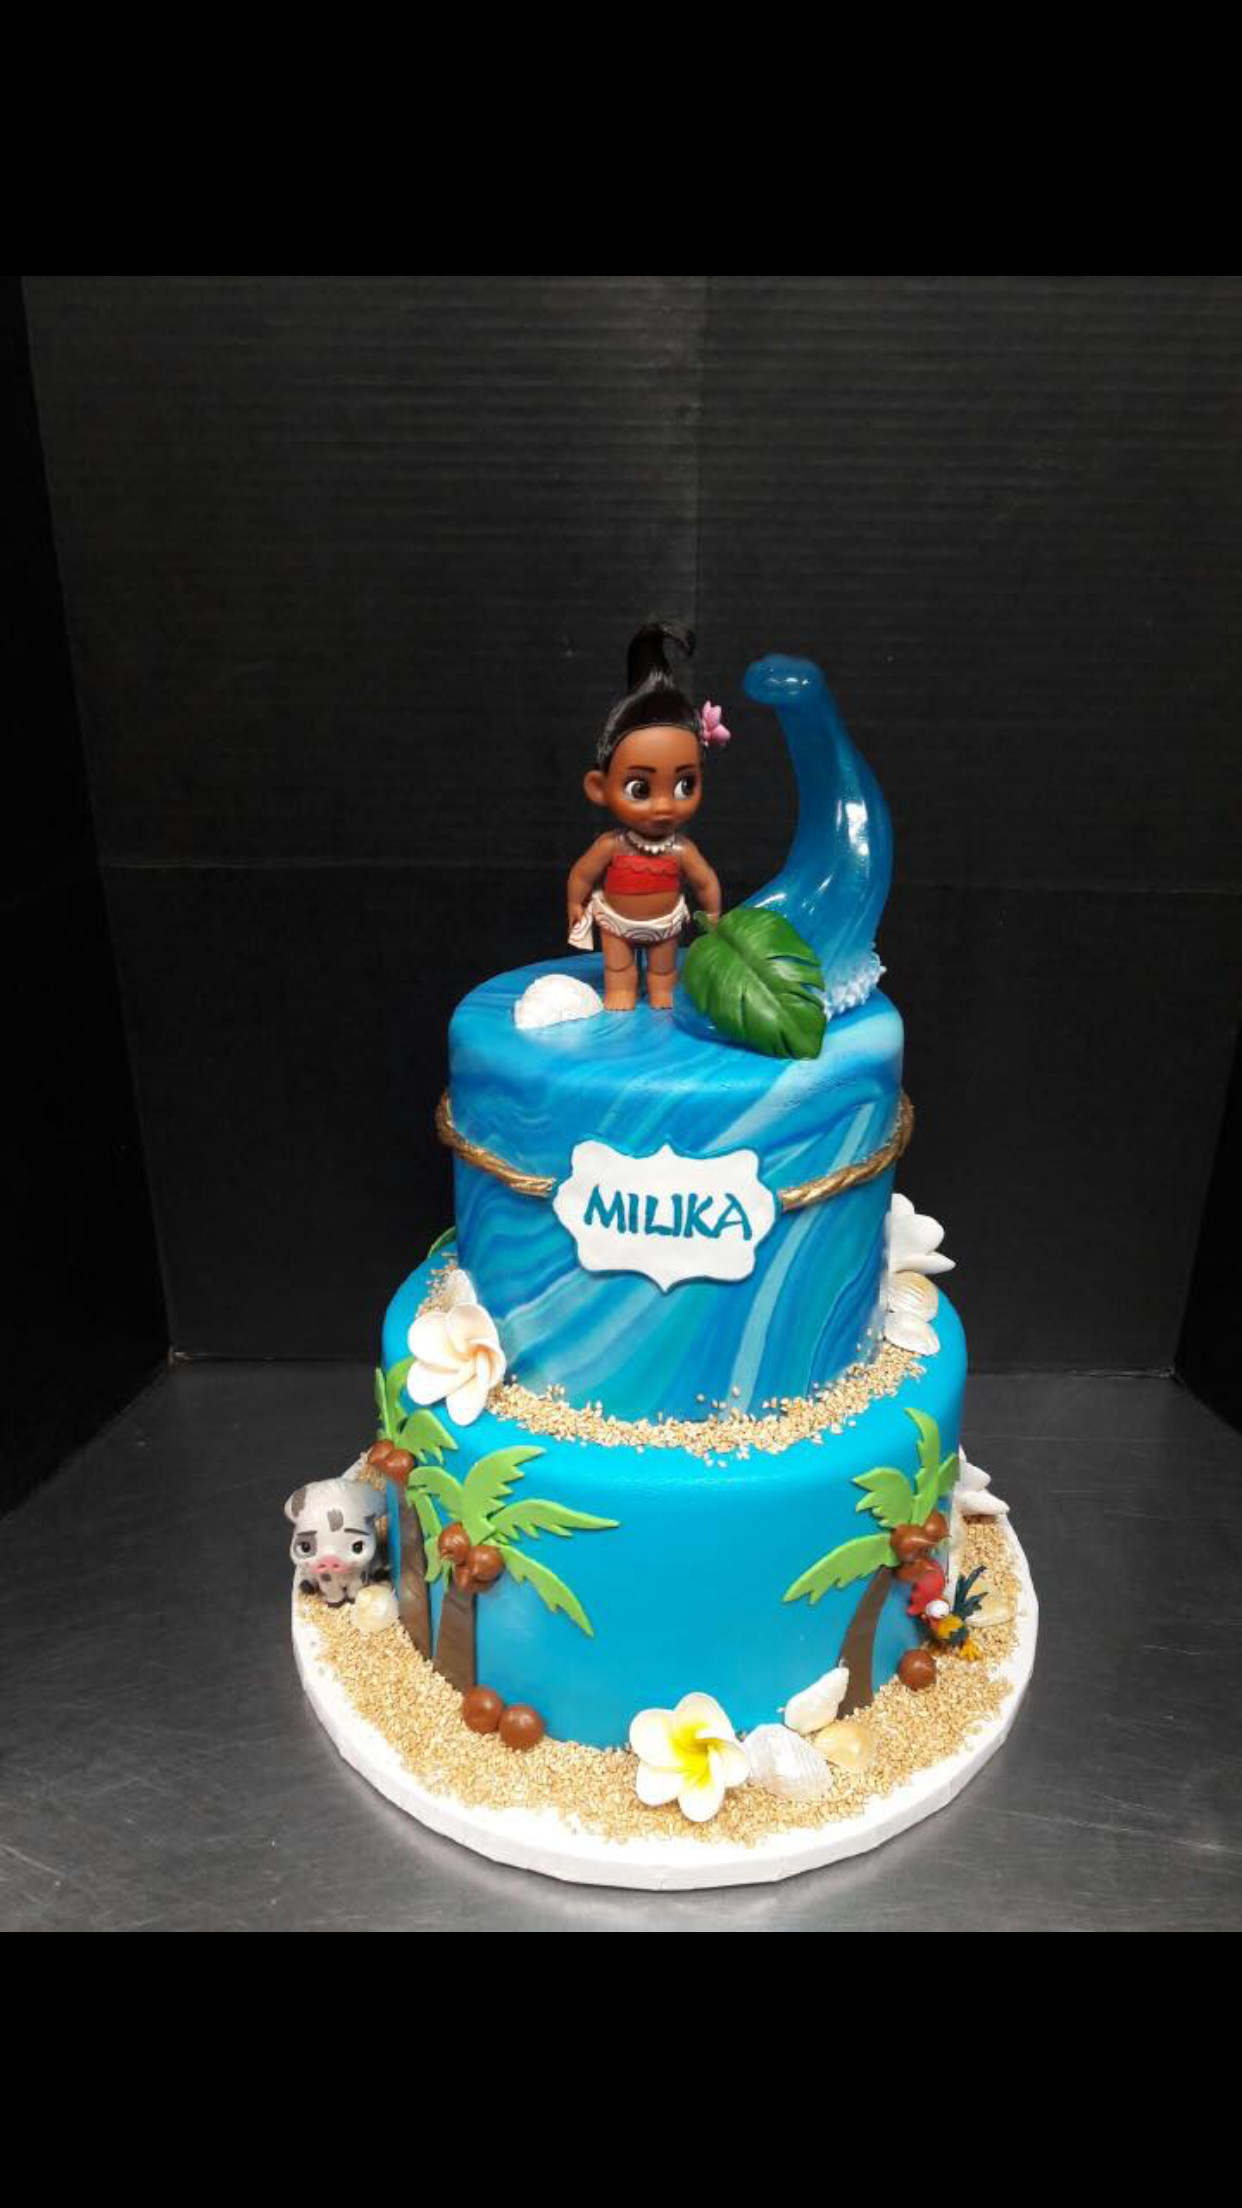 Best ideas about Disney Birthday Cake . Save or Pin Disney Moana birthday cake disneyprincess Now.